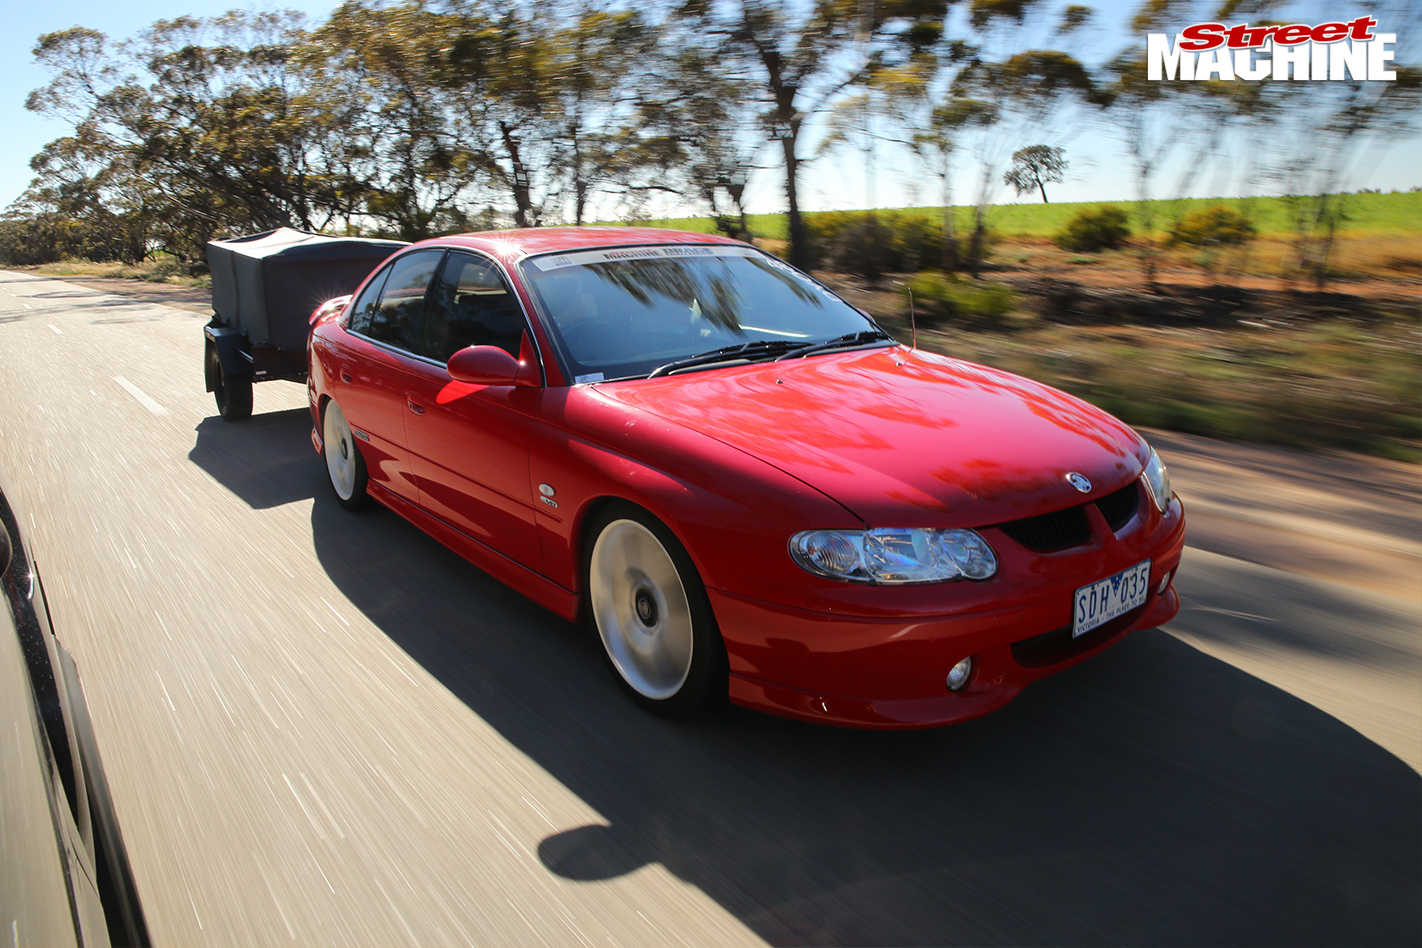 Holden -vx -commodore -ss -drag -challenge -onroad